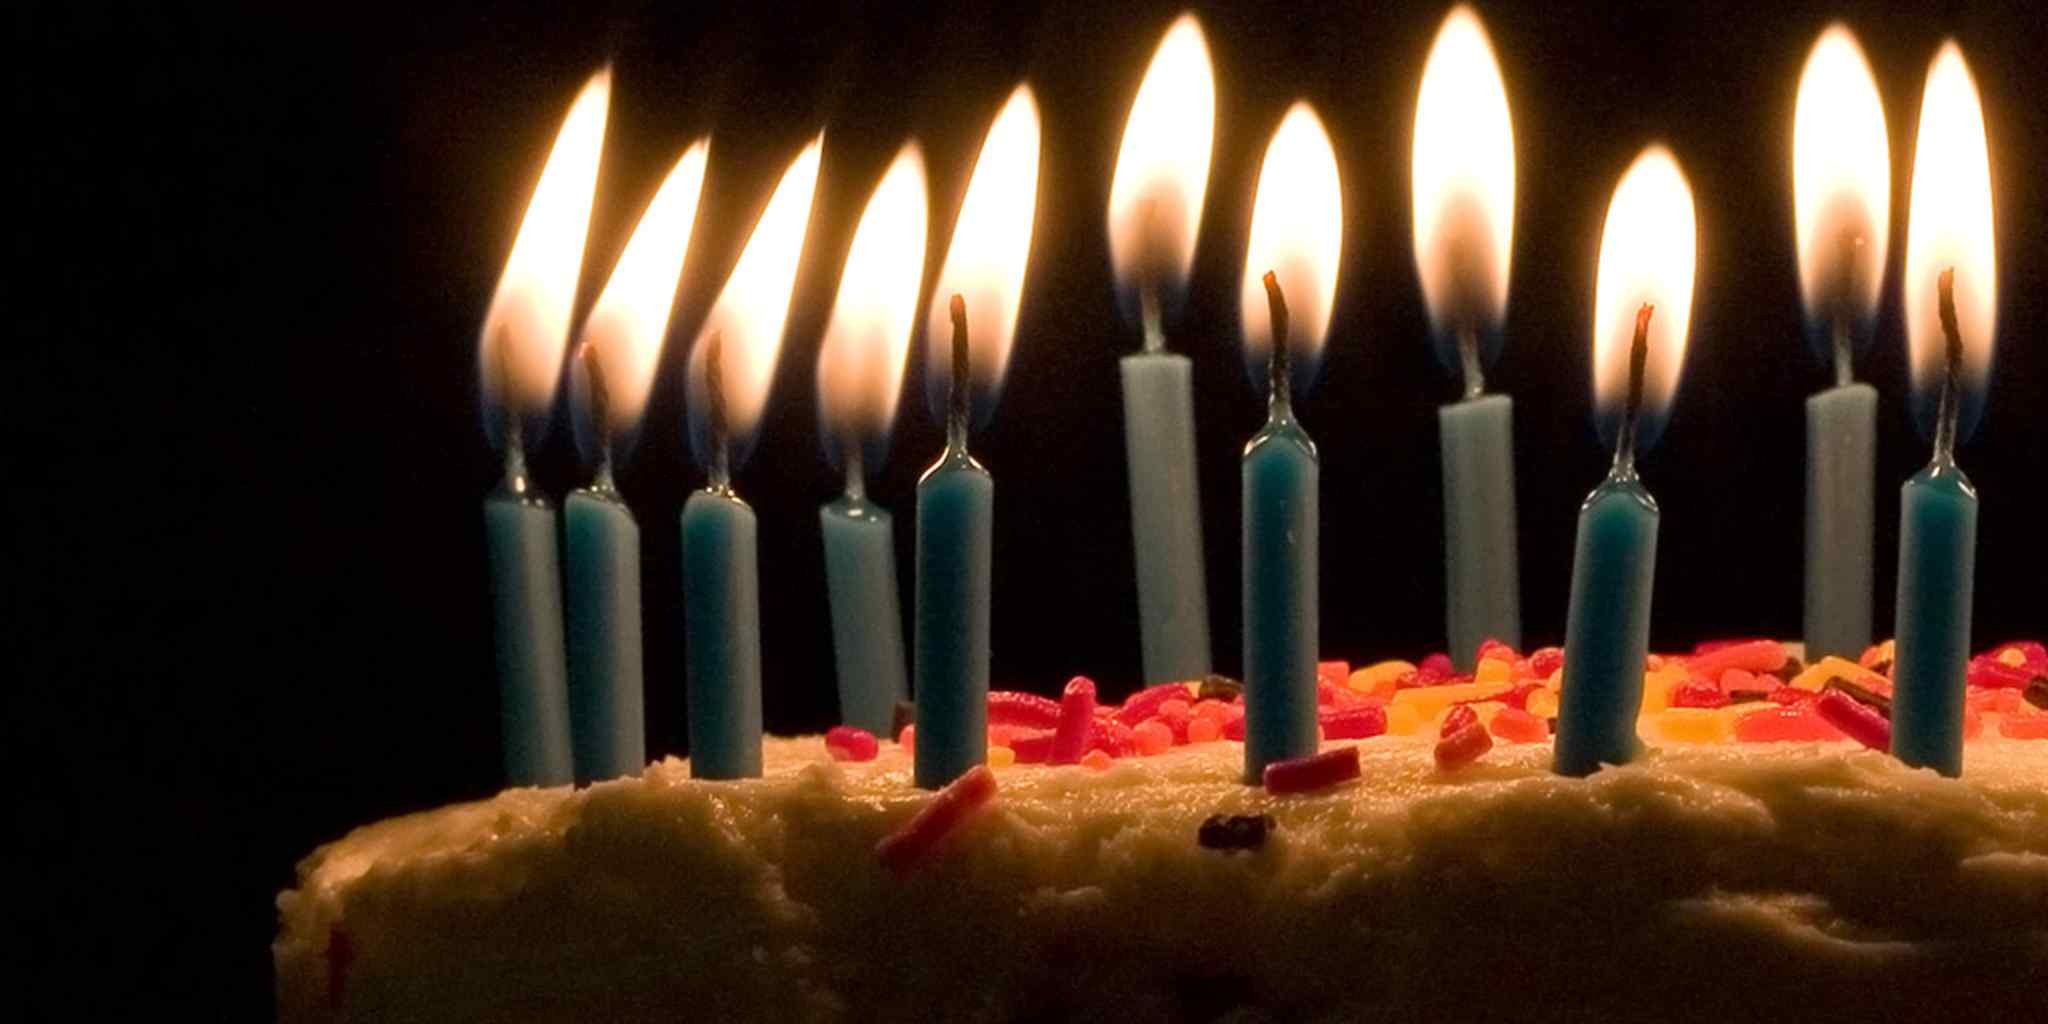 picture of birthday cake and candles ; 9111ef99a74a2a25198c4b22569850bd